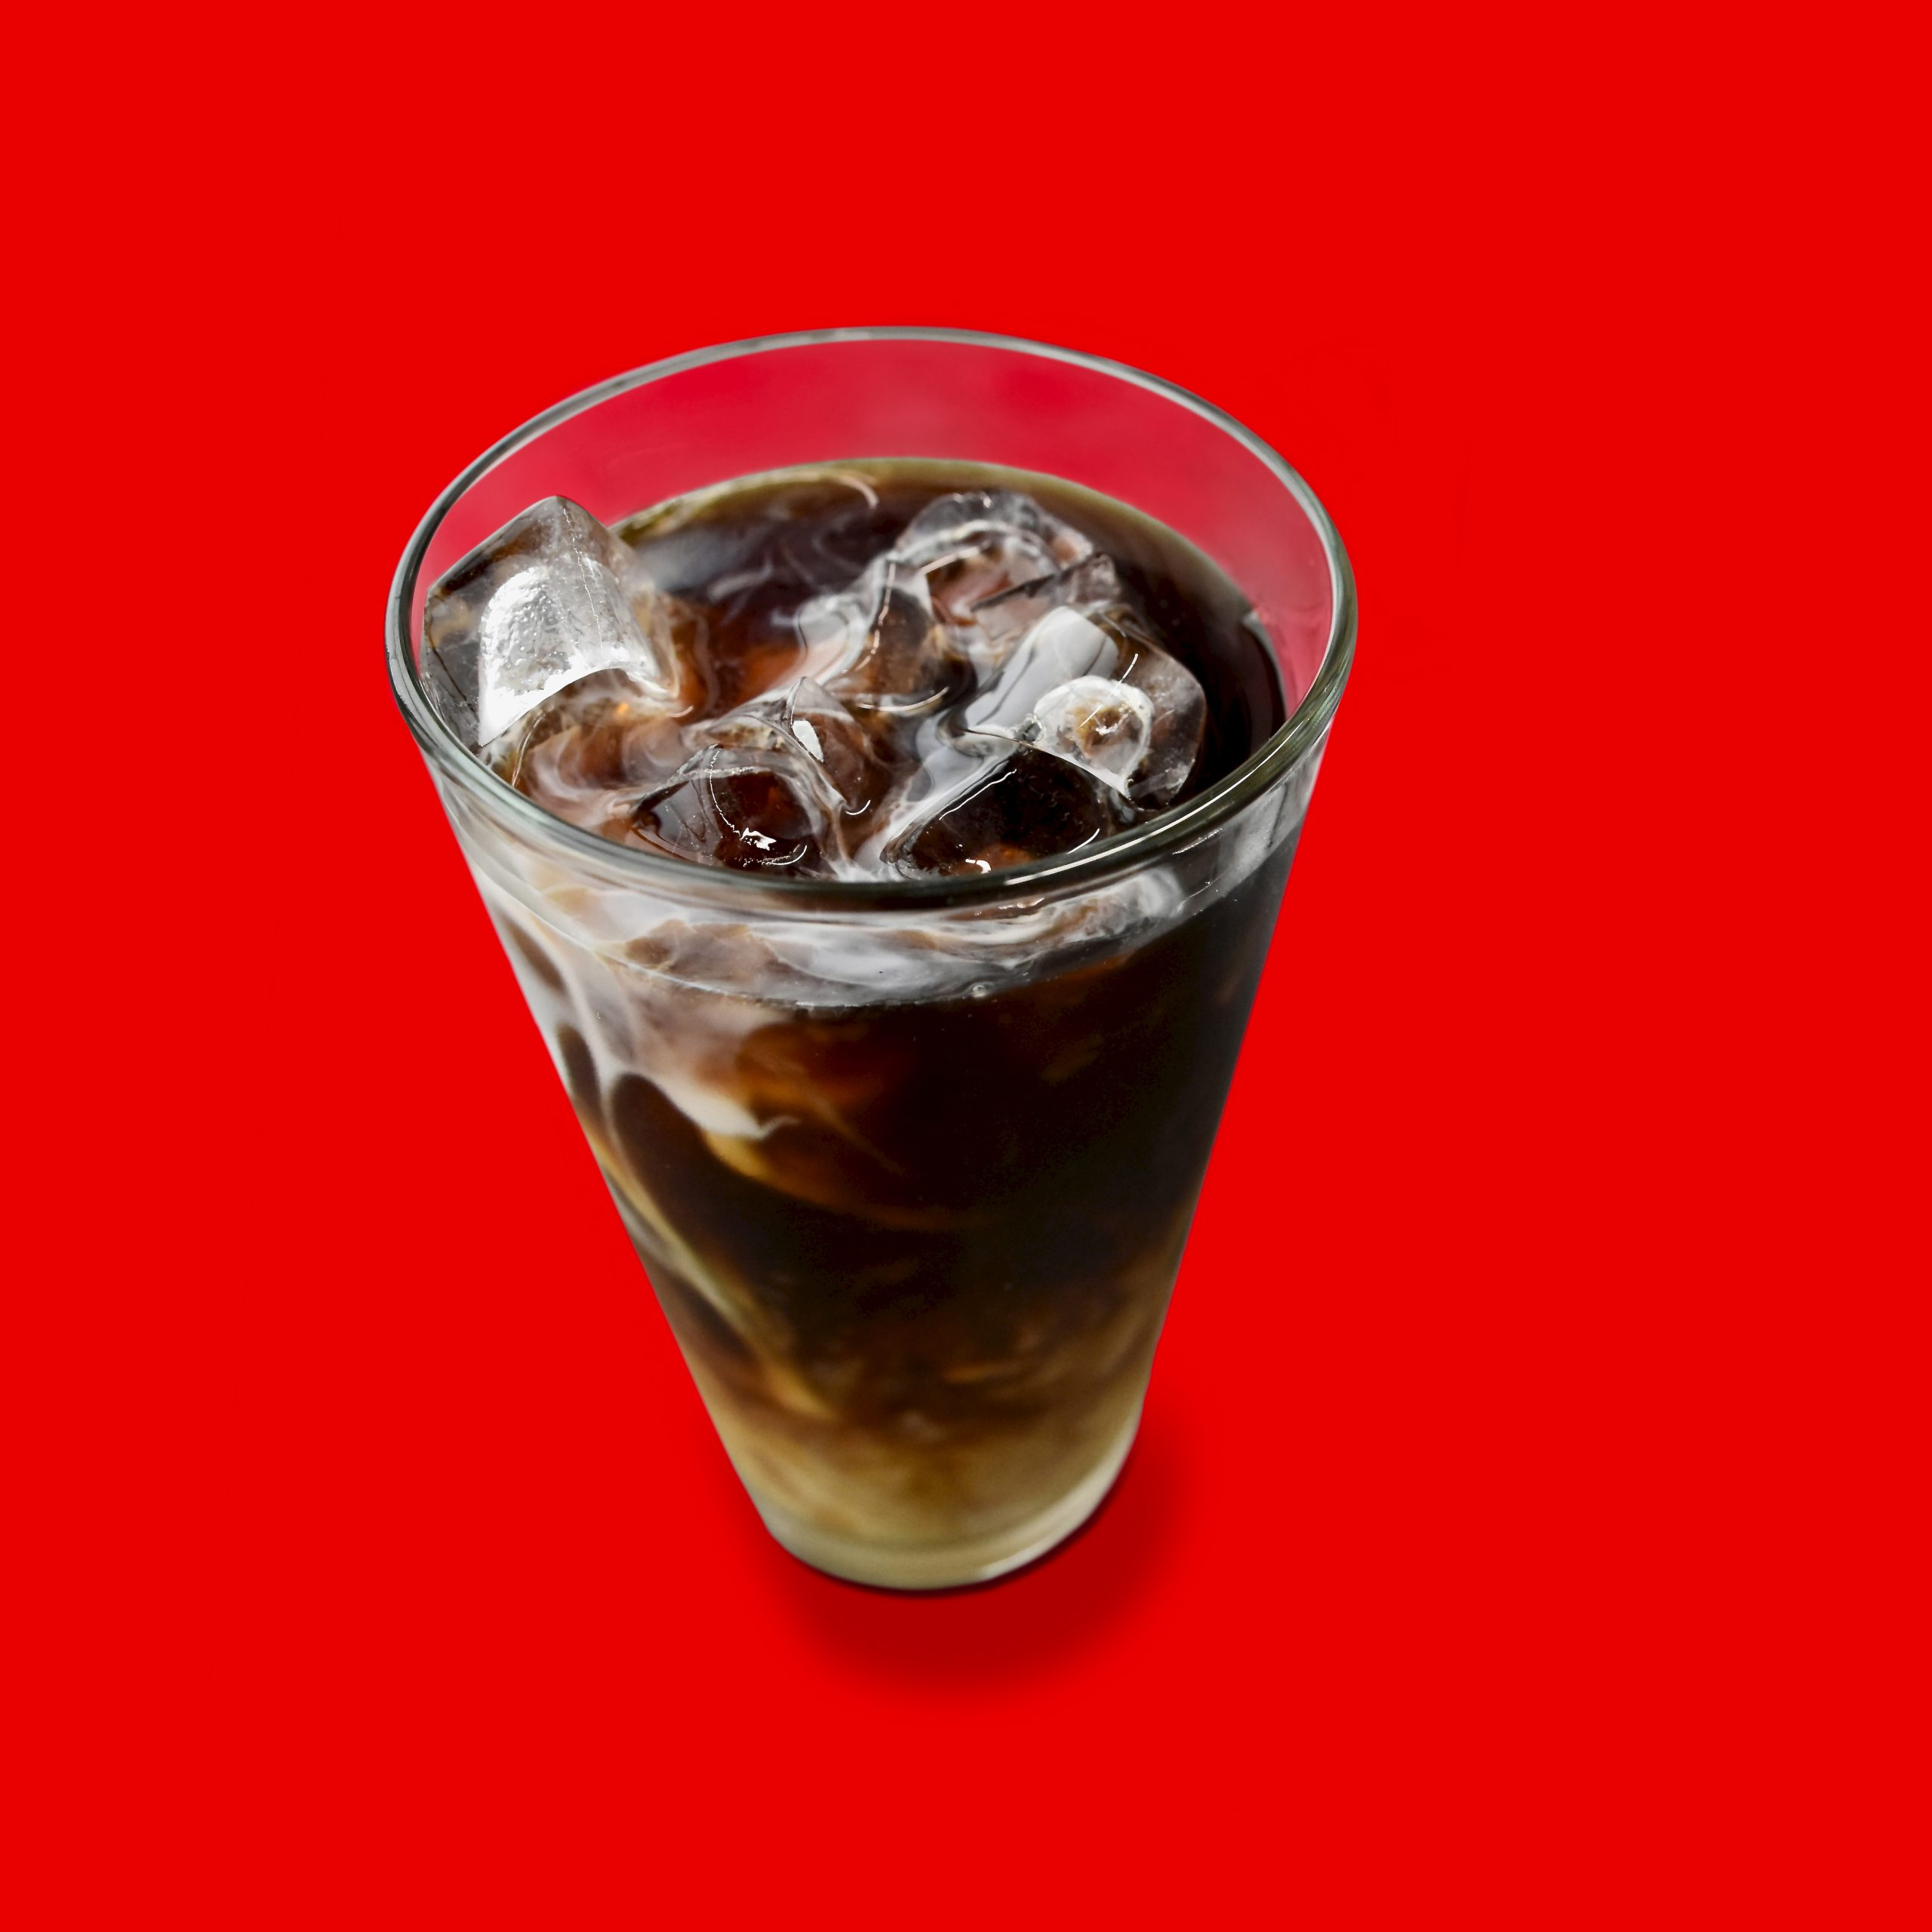 Iced Coffee in glass with ice on red background